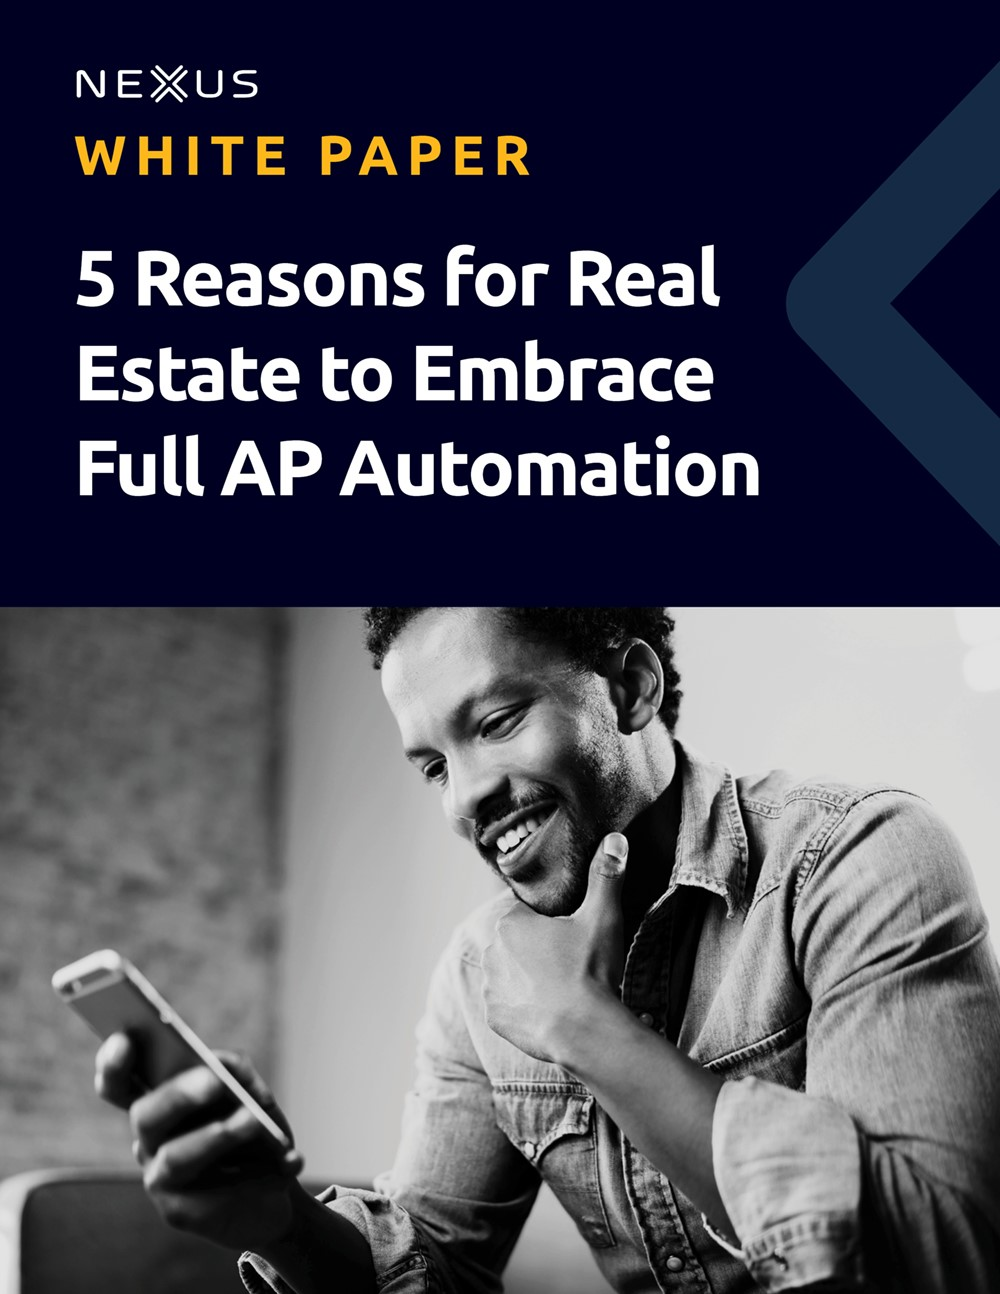 Full AP Automation Thumbnail 2.jpg